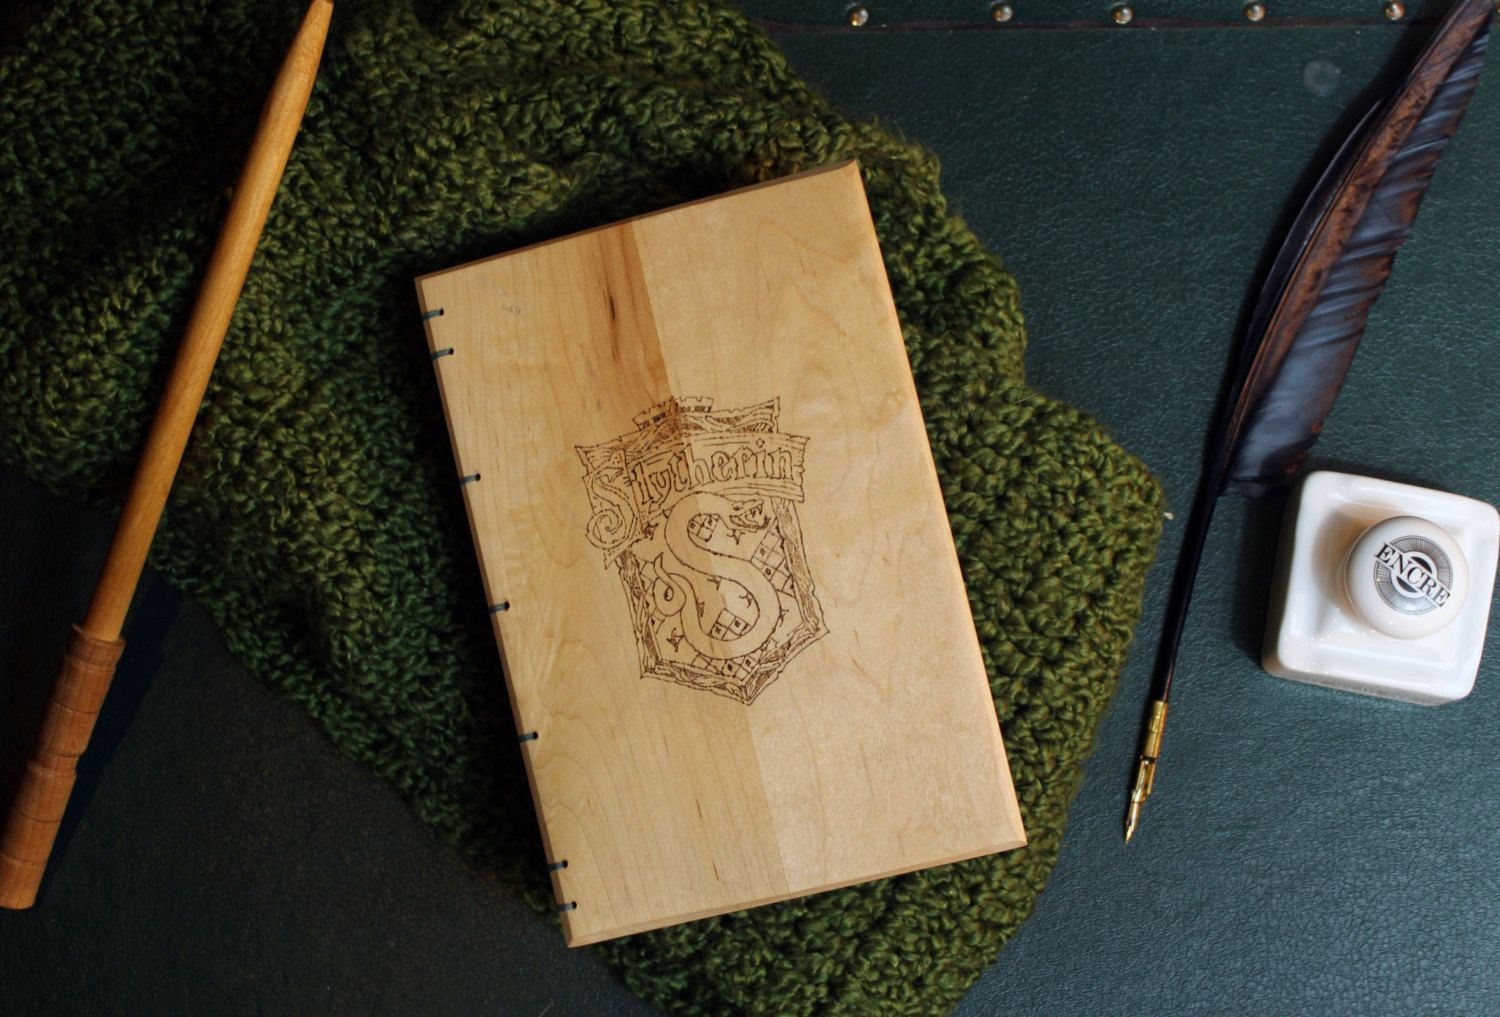 Handbound Wood Covered Journal- Woodburned Slytherin Crest- Harry Potter- Silver and Green Signatures by BowtieAndTheBandit on Etsy